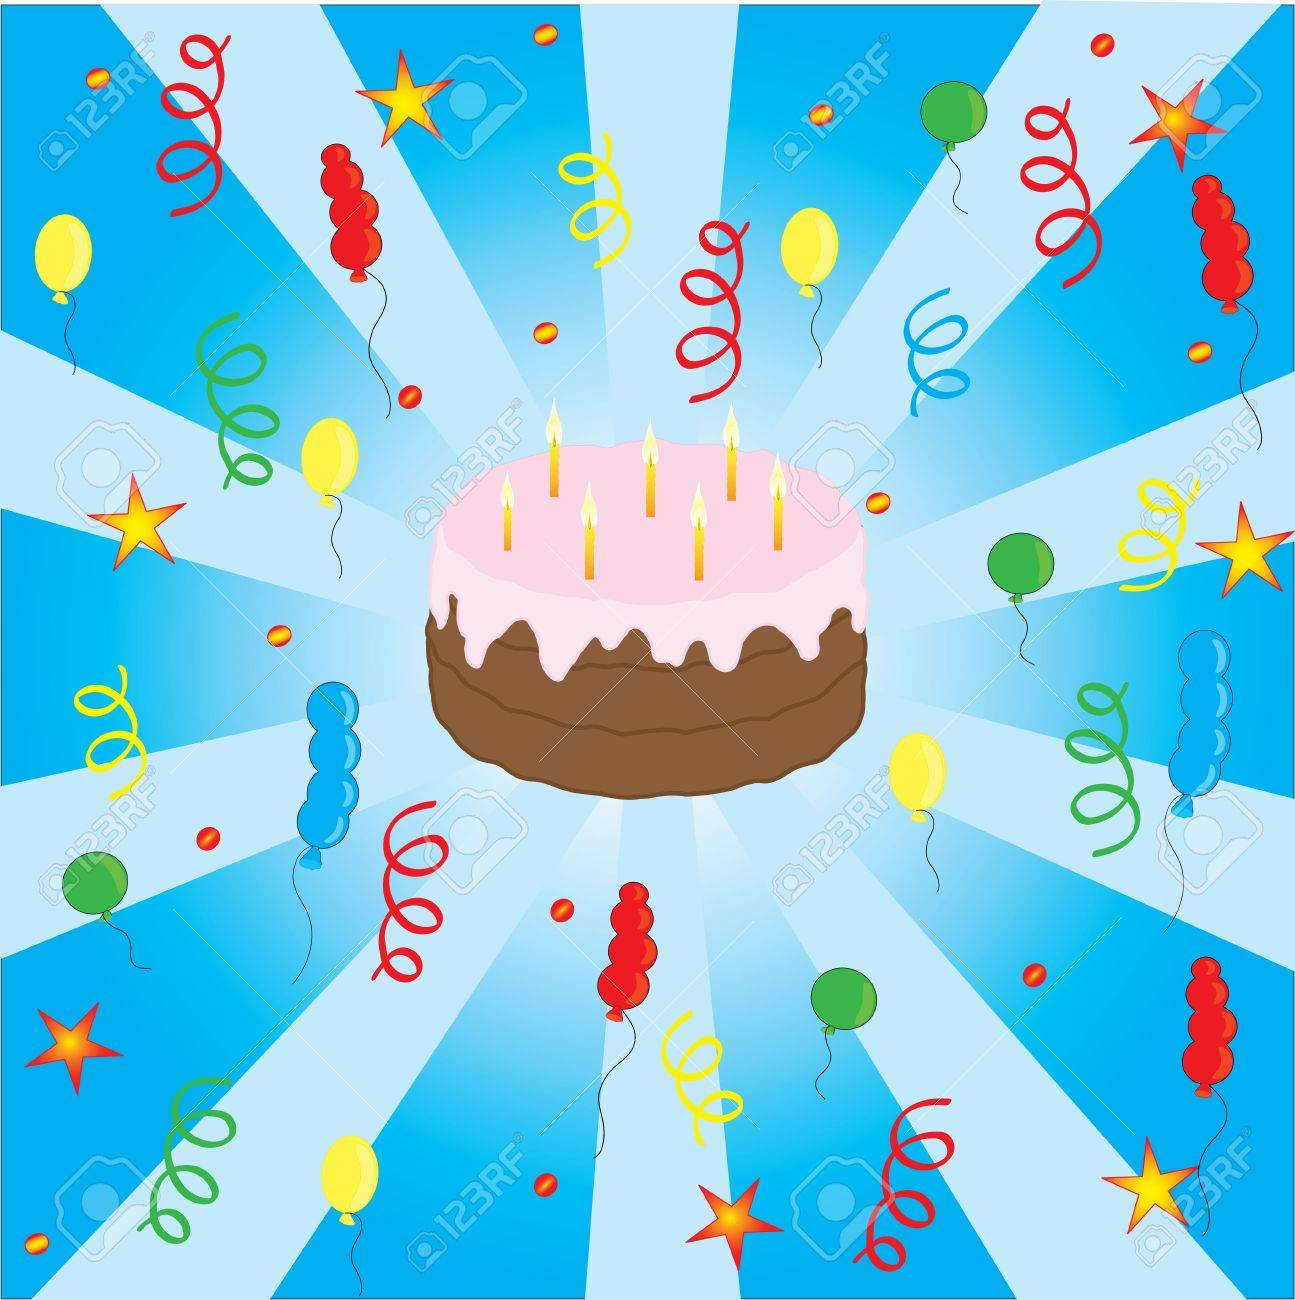 Celebration with cake and many balloons Stock Vector - 8476821